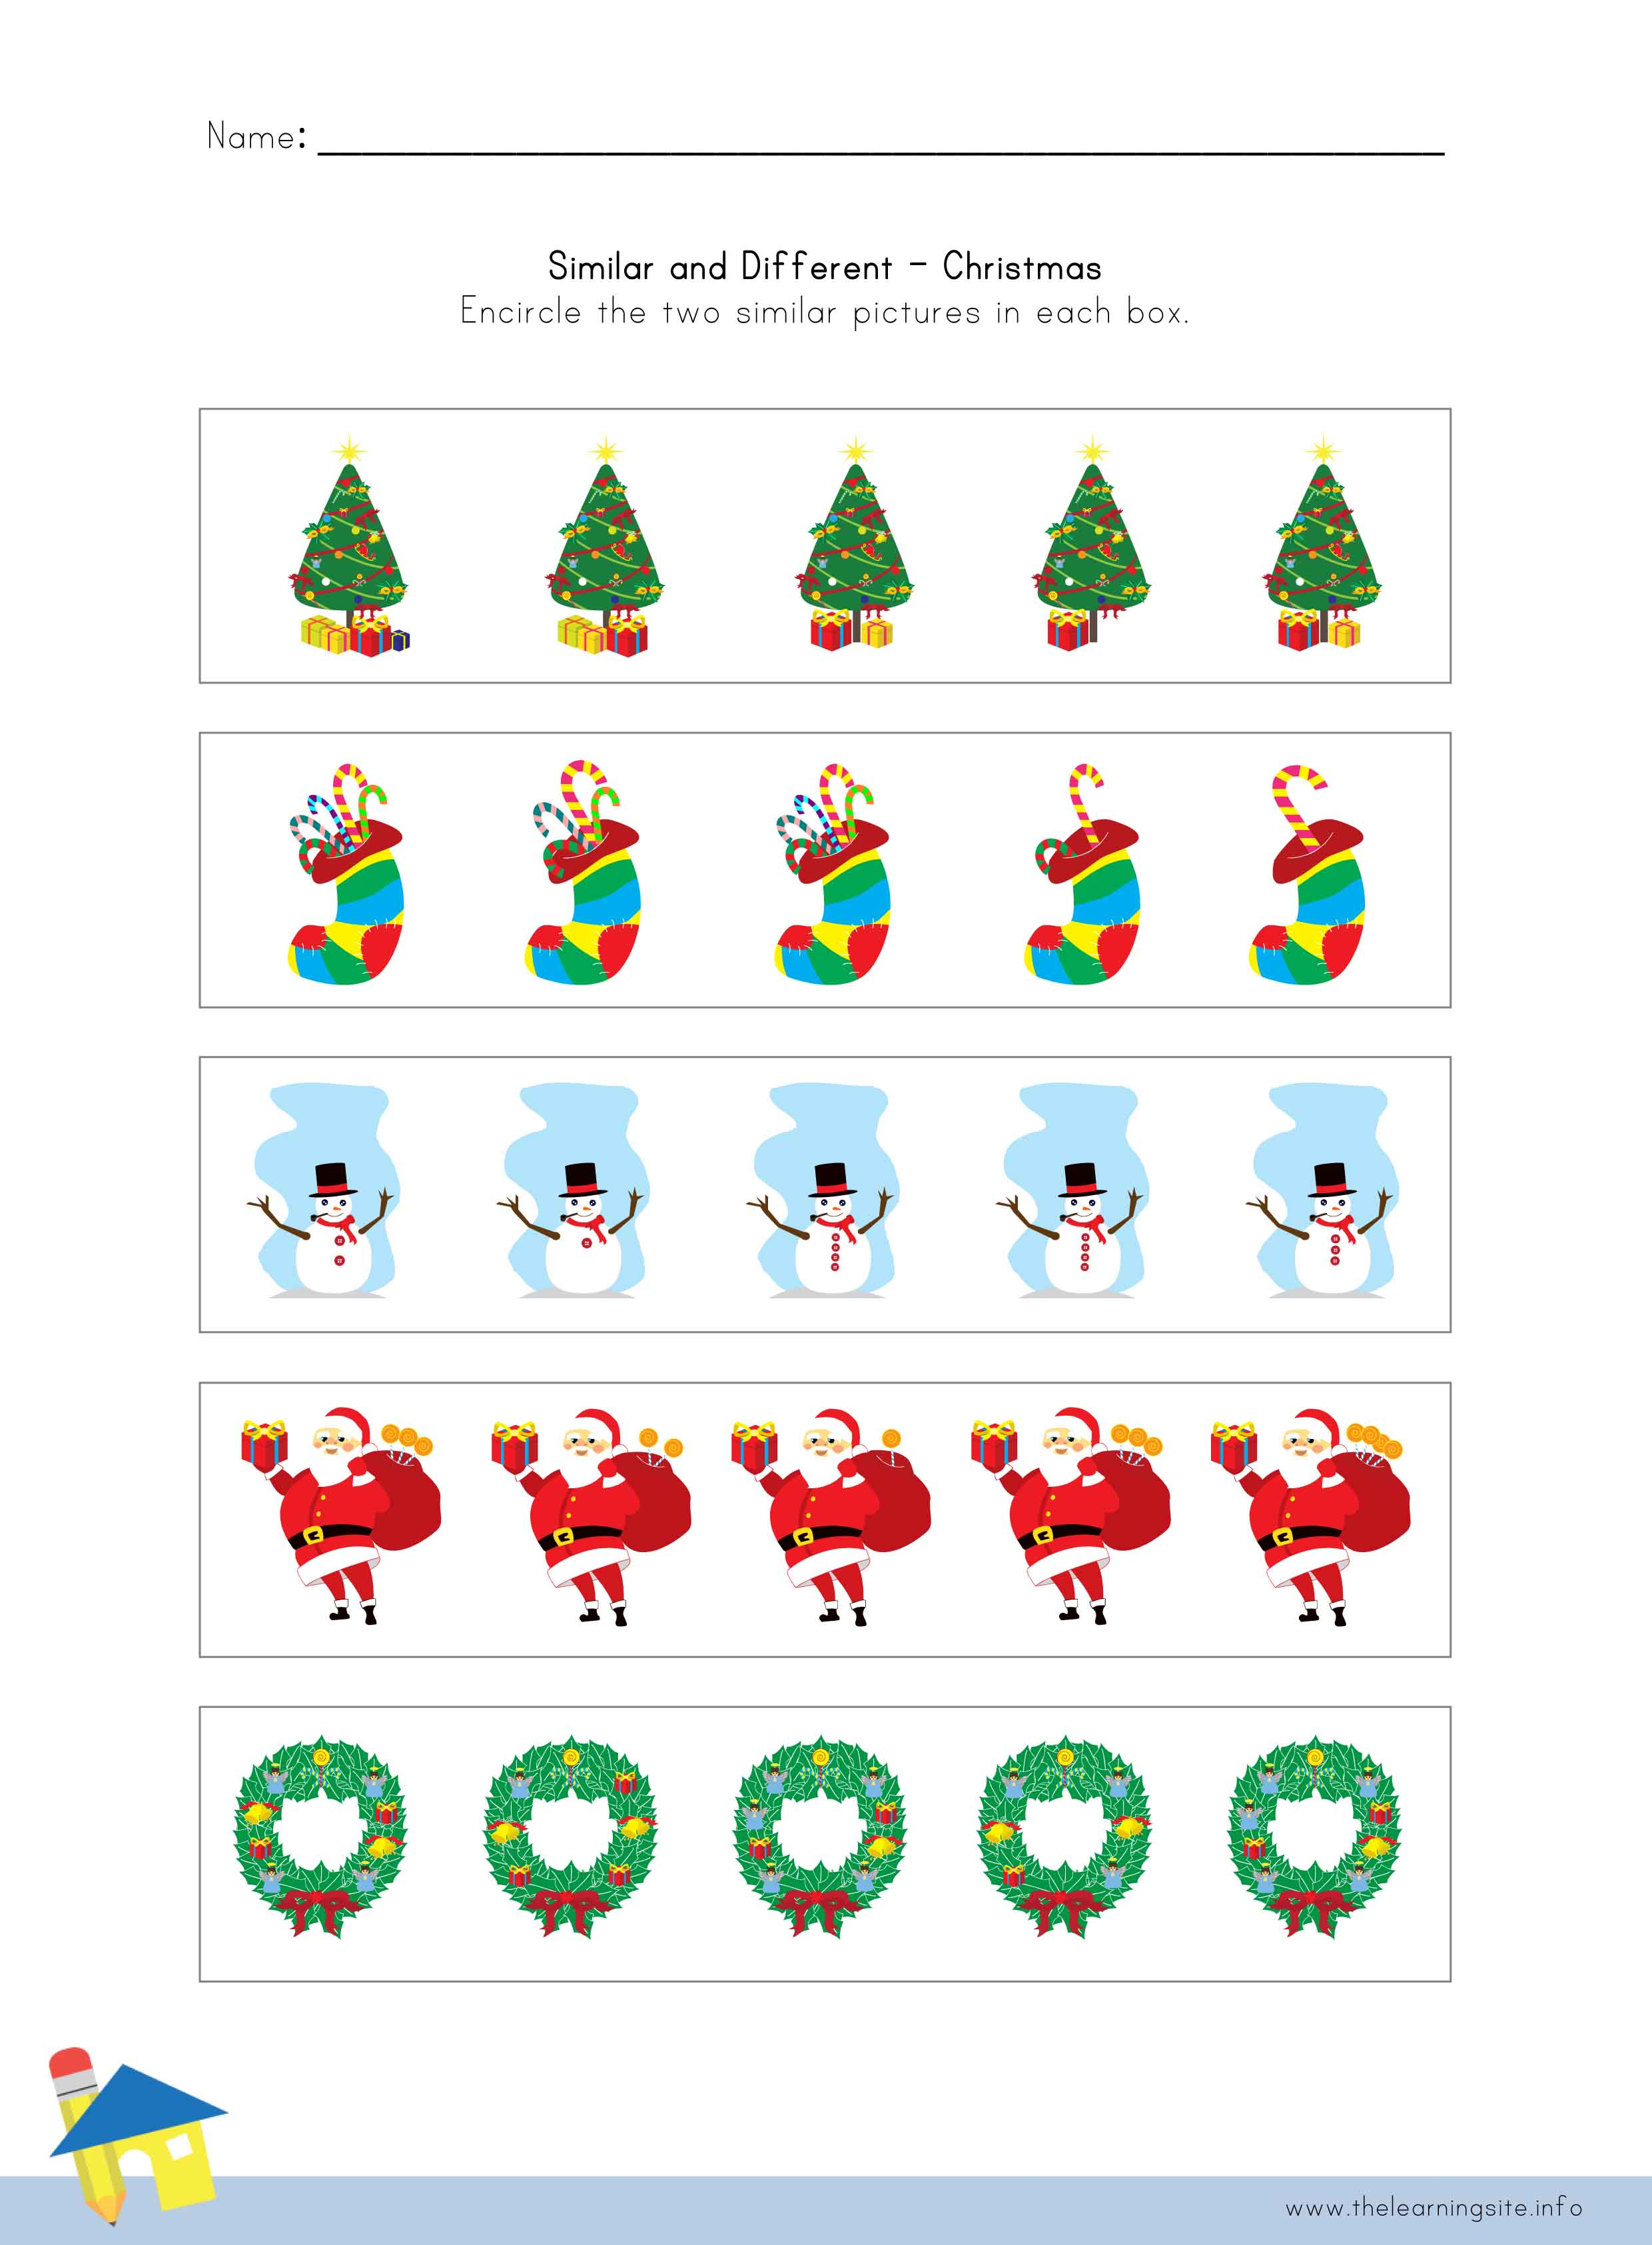 worksheet Which Is Different Worksheet the learning site christmas similar and different worksheet 3